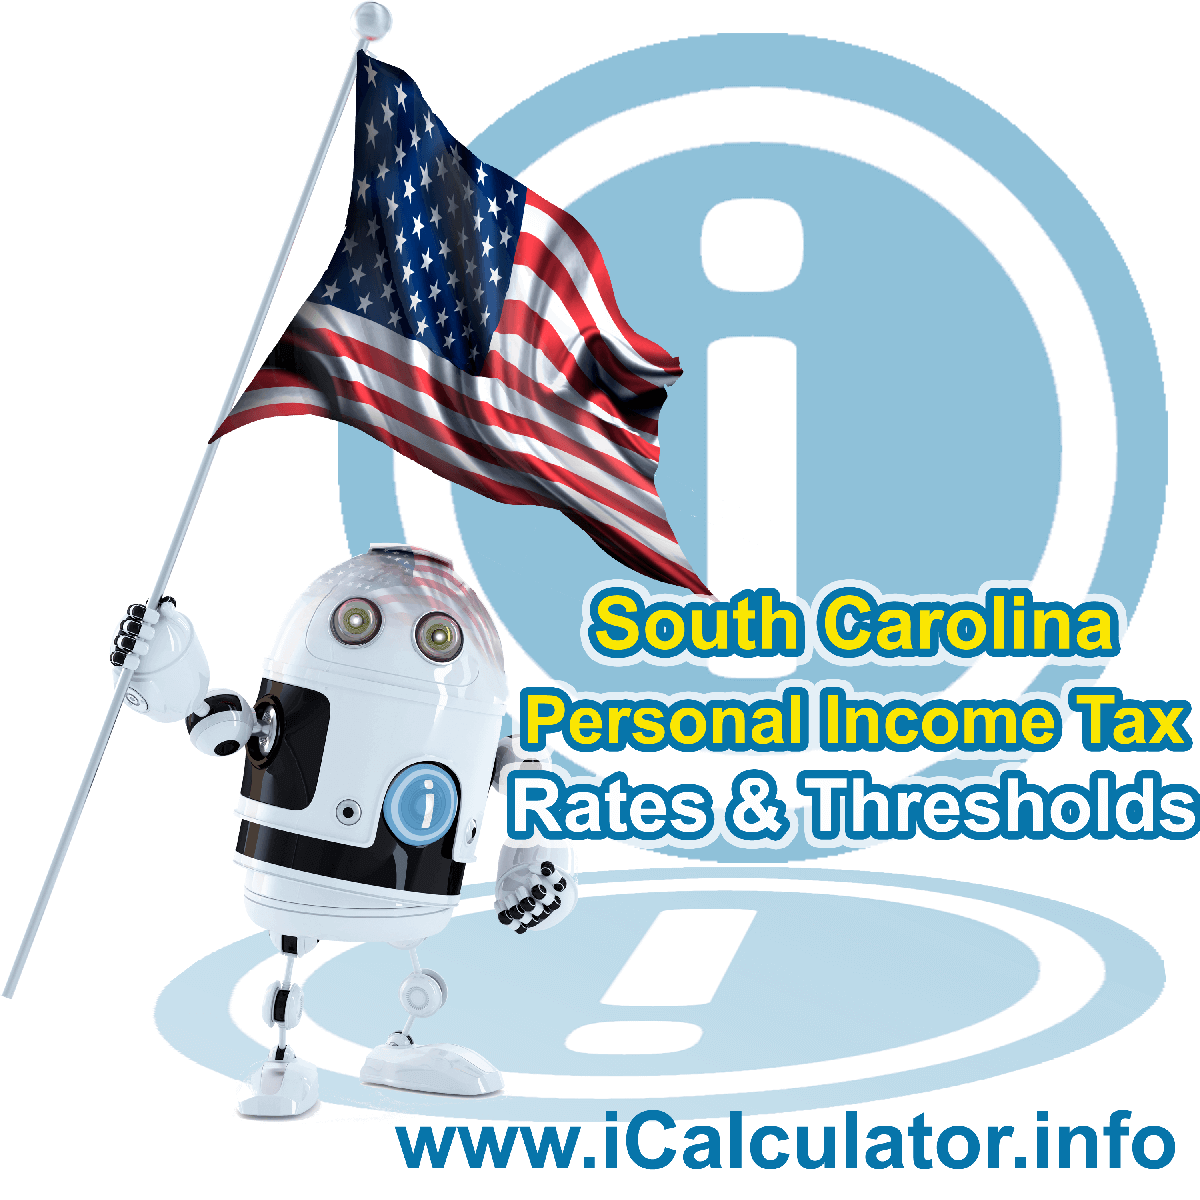 South Carolina State Tax Tables 2019. This image displays details of the South Carolina State Tax Tables for the 2019 tax return year which is provided in support of the 2019 US Tax Calculator